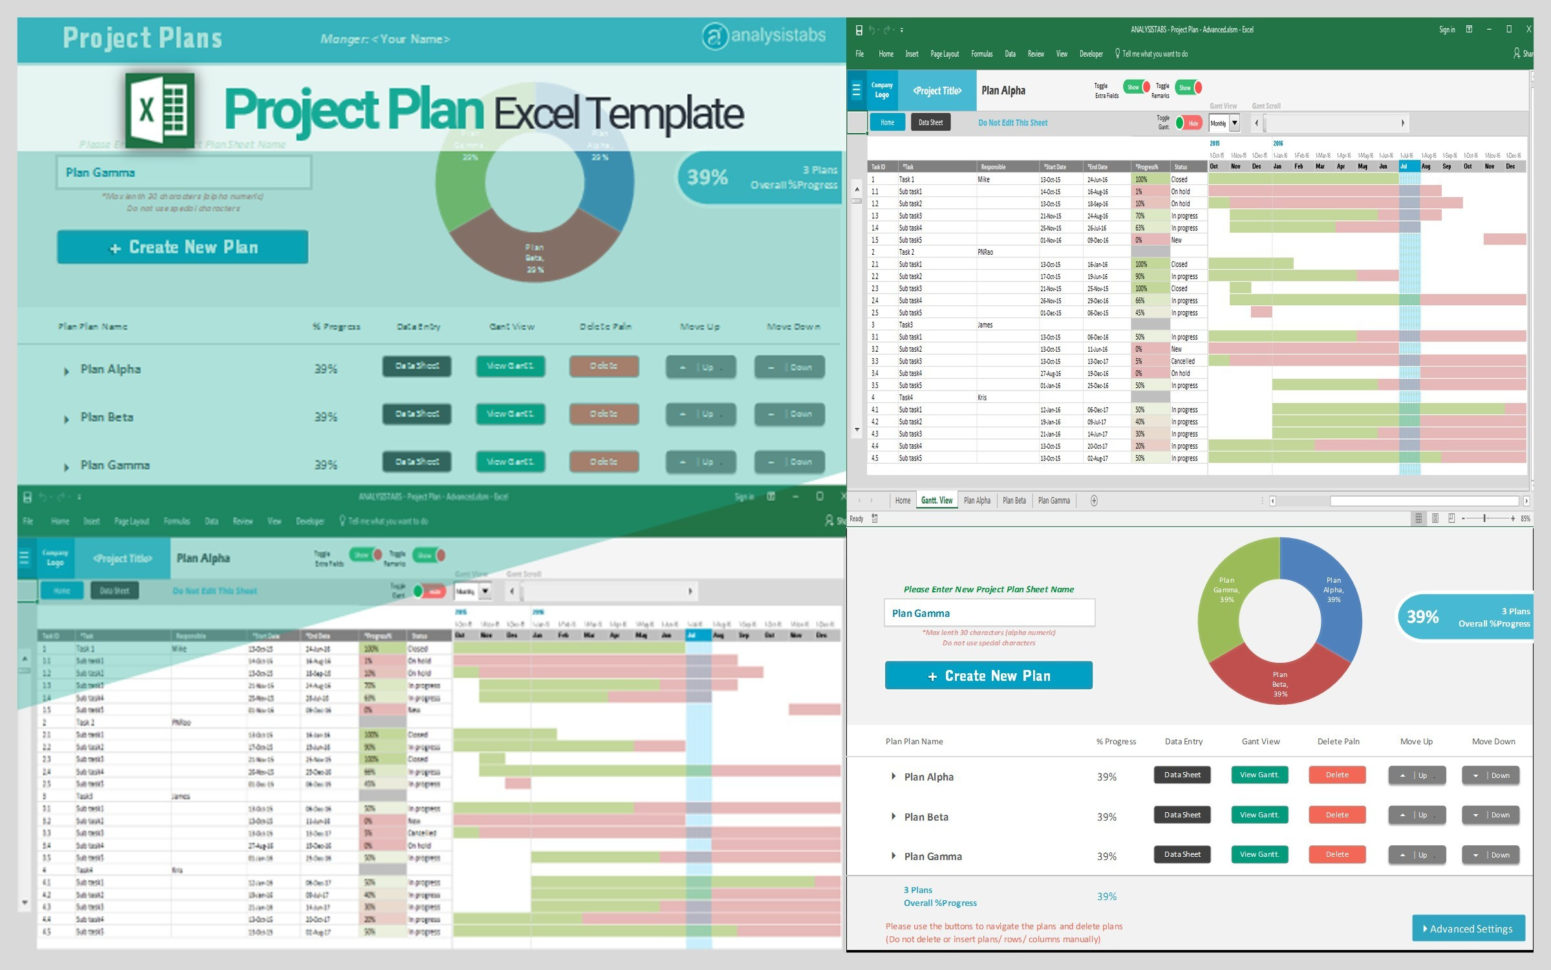 Project Plan Template Excel 2013 Elegant Luxury Timeline Template For Project Planning Timeline Template Excel